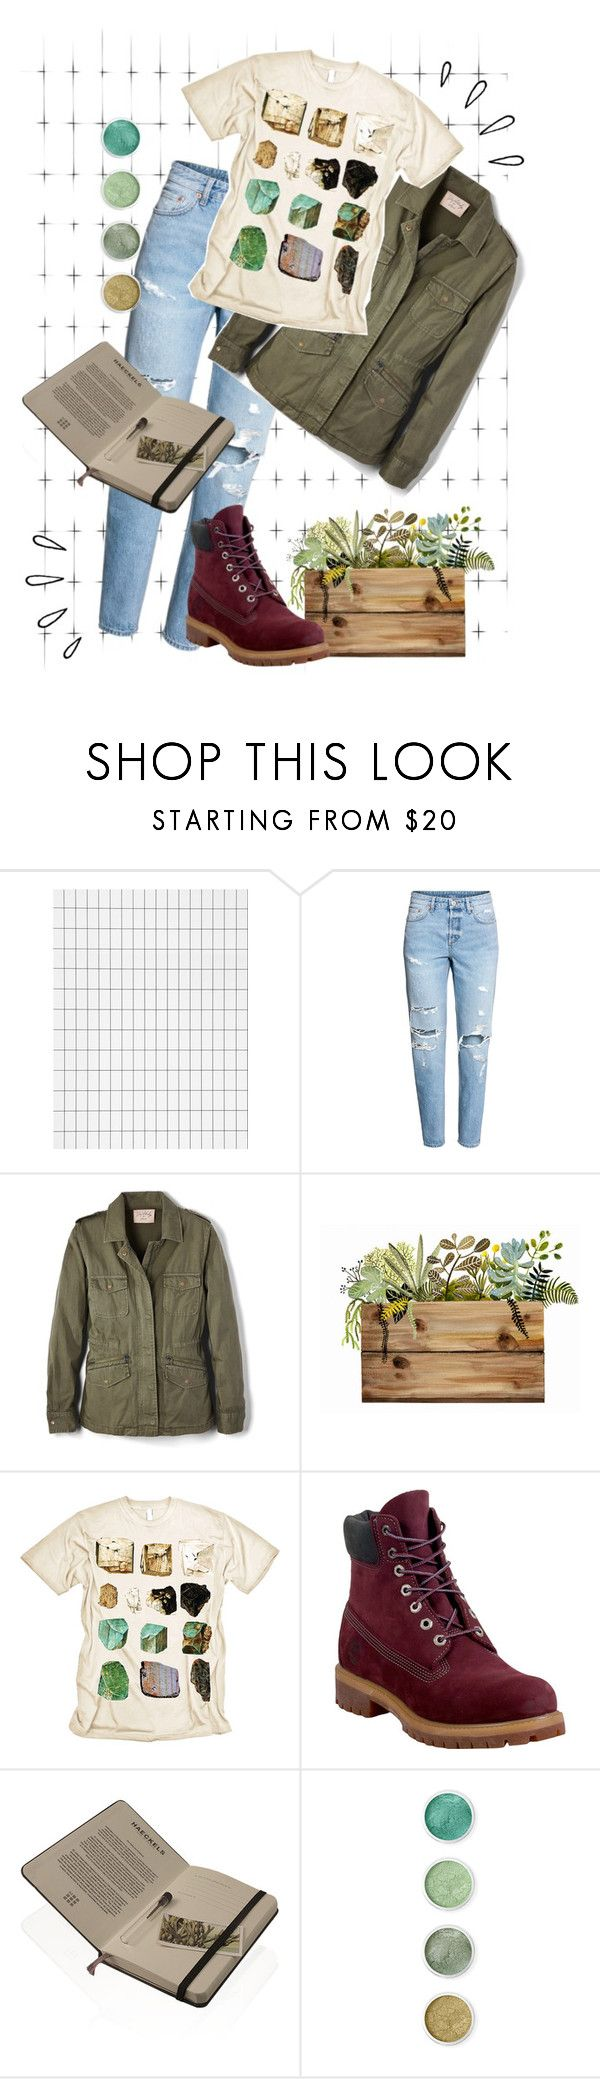 """""""adventure awaits"""" by fiona137 ❤ liked on Polyvore featuring ferm LIVING, H&M, Velvet by Graham & Spencer, Mineral, Timberland, Old Navy, Haeckels and Terre Mère"""